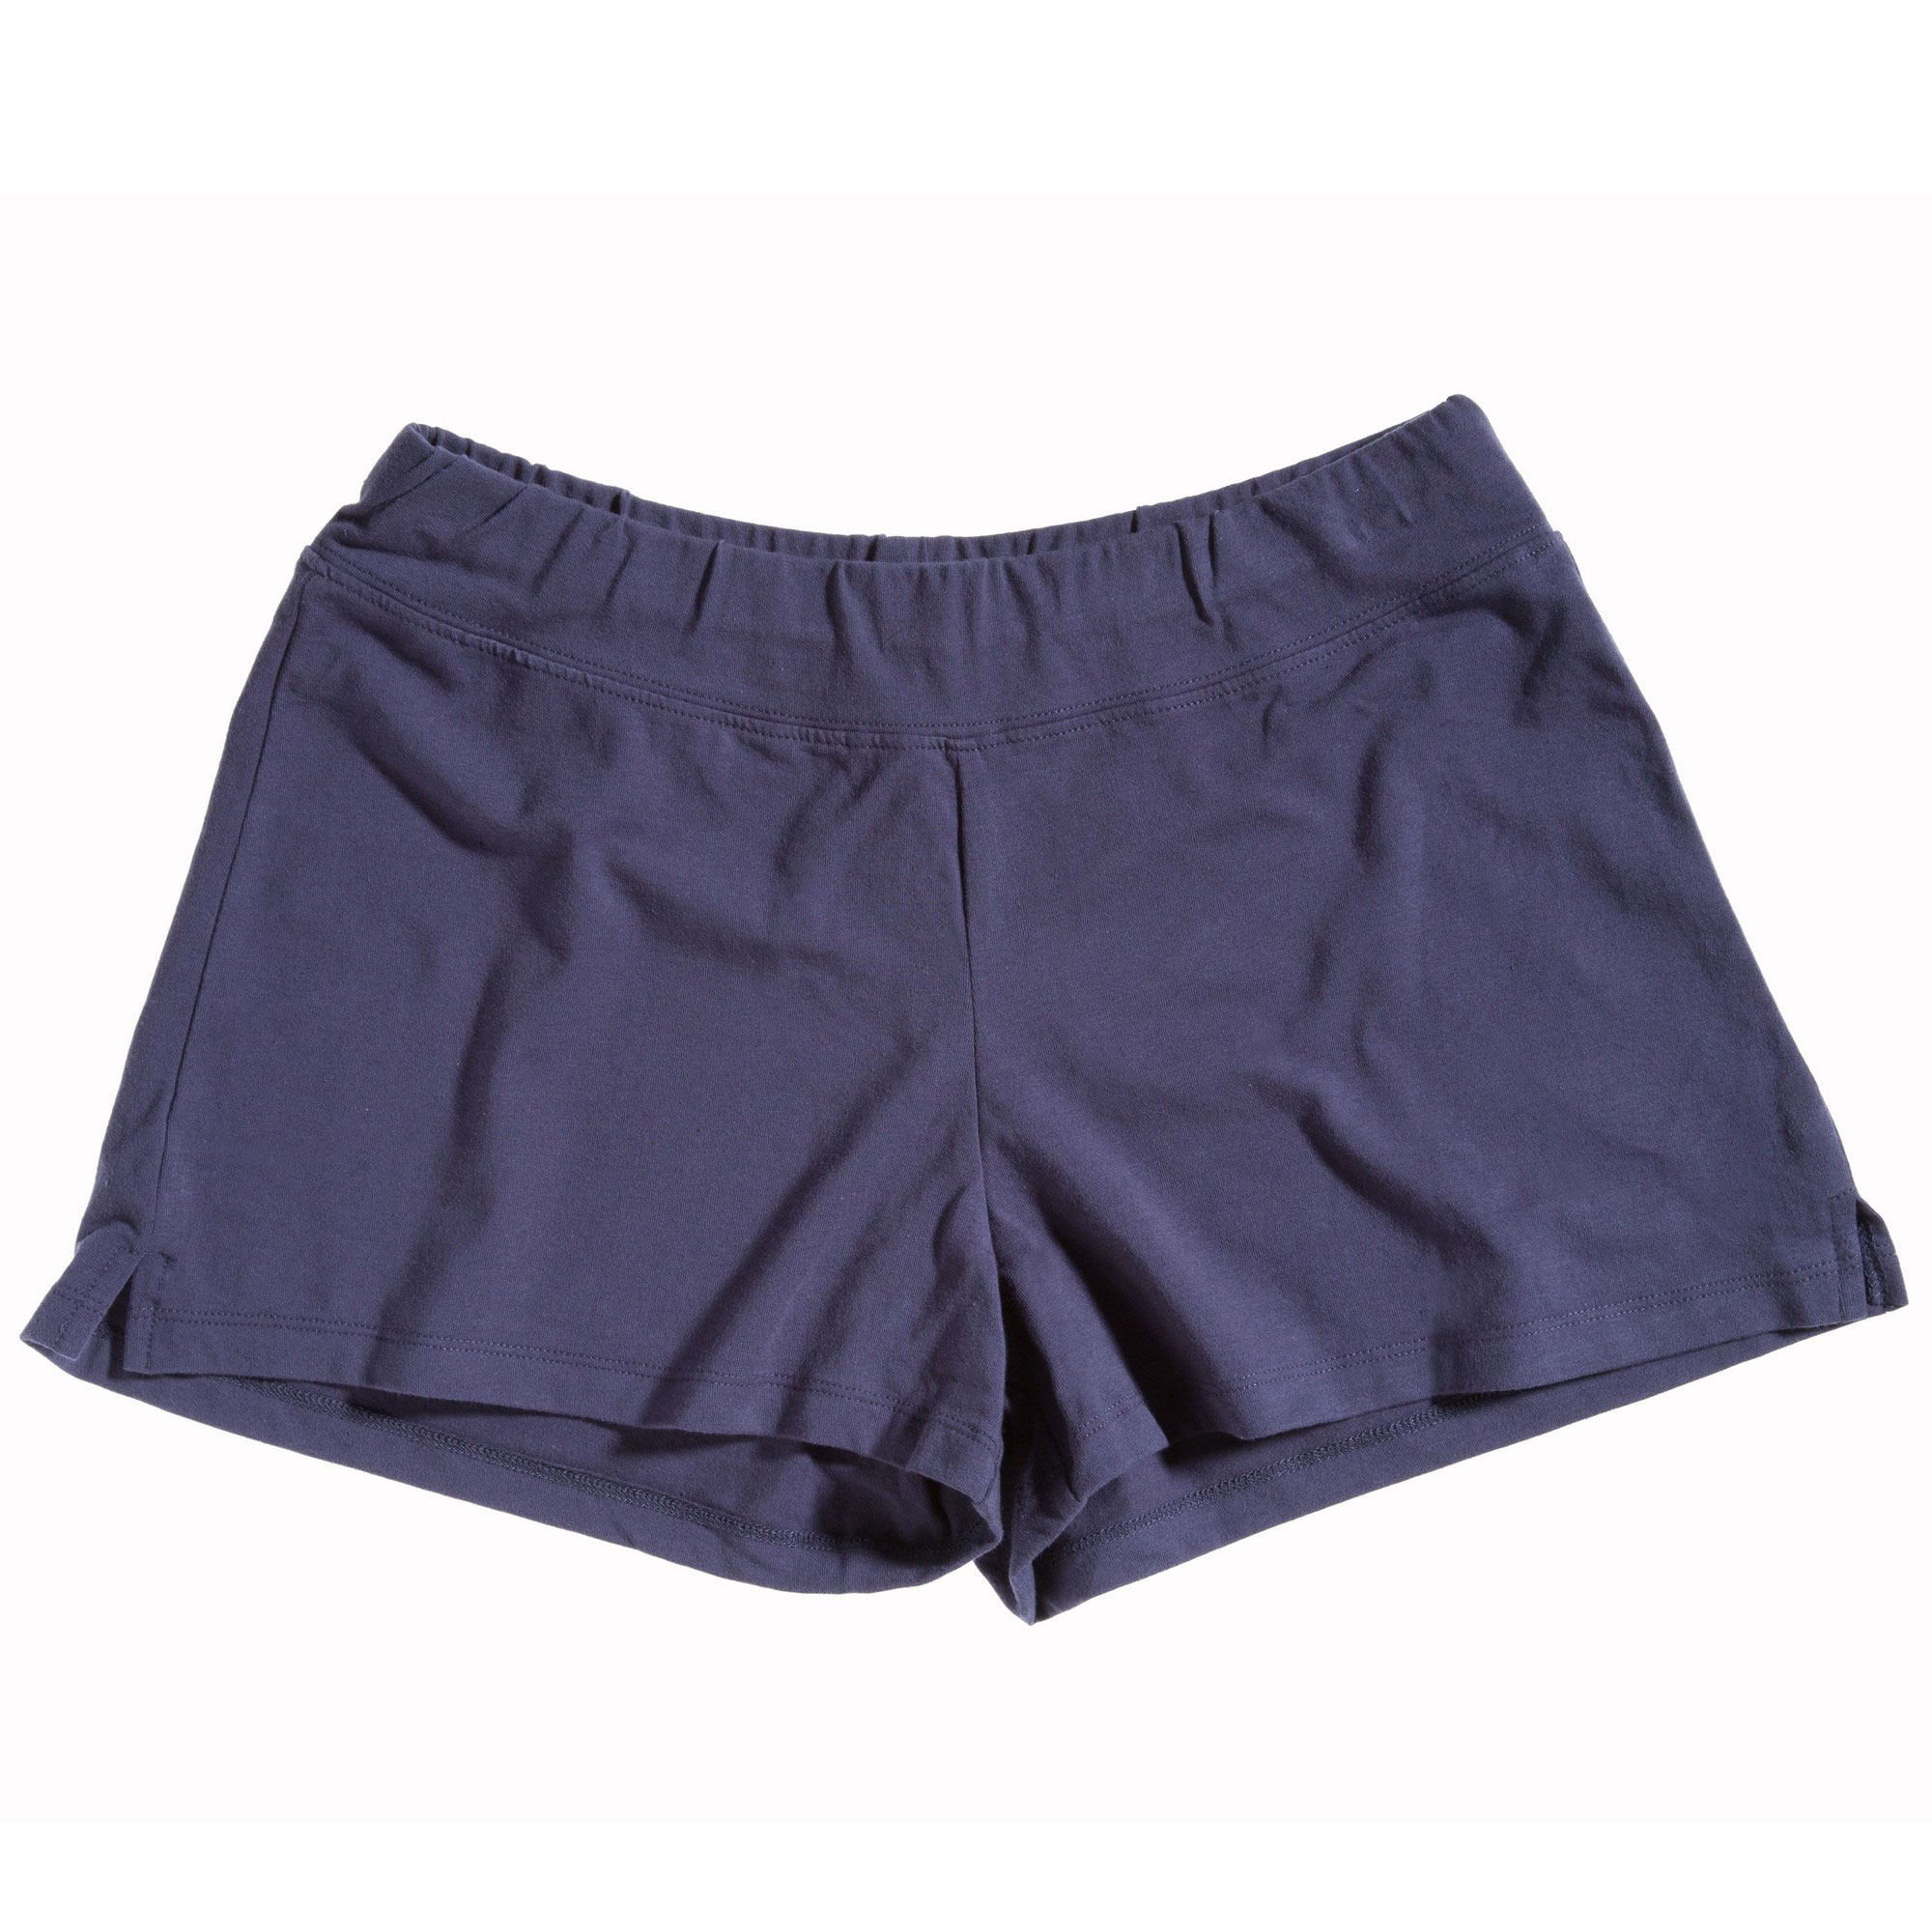 These ruched booty shorts are made of 4-way stretch matte nylon/spandex for comfort and ease of motion, and a wide elastic waistband and banded leg openings ensure a comfortable and secure fit. Child sizes have a 1 ½